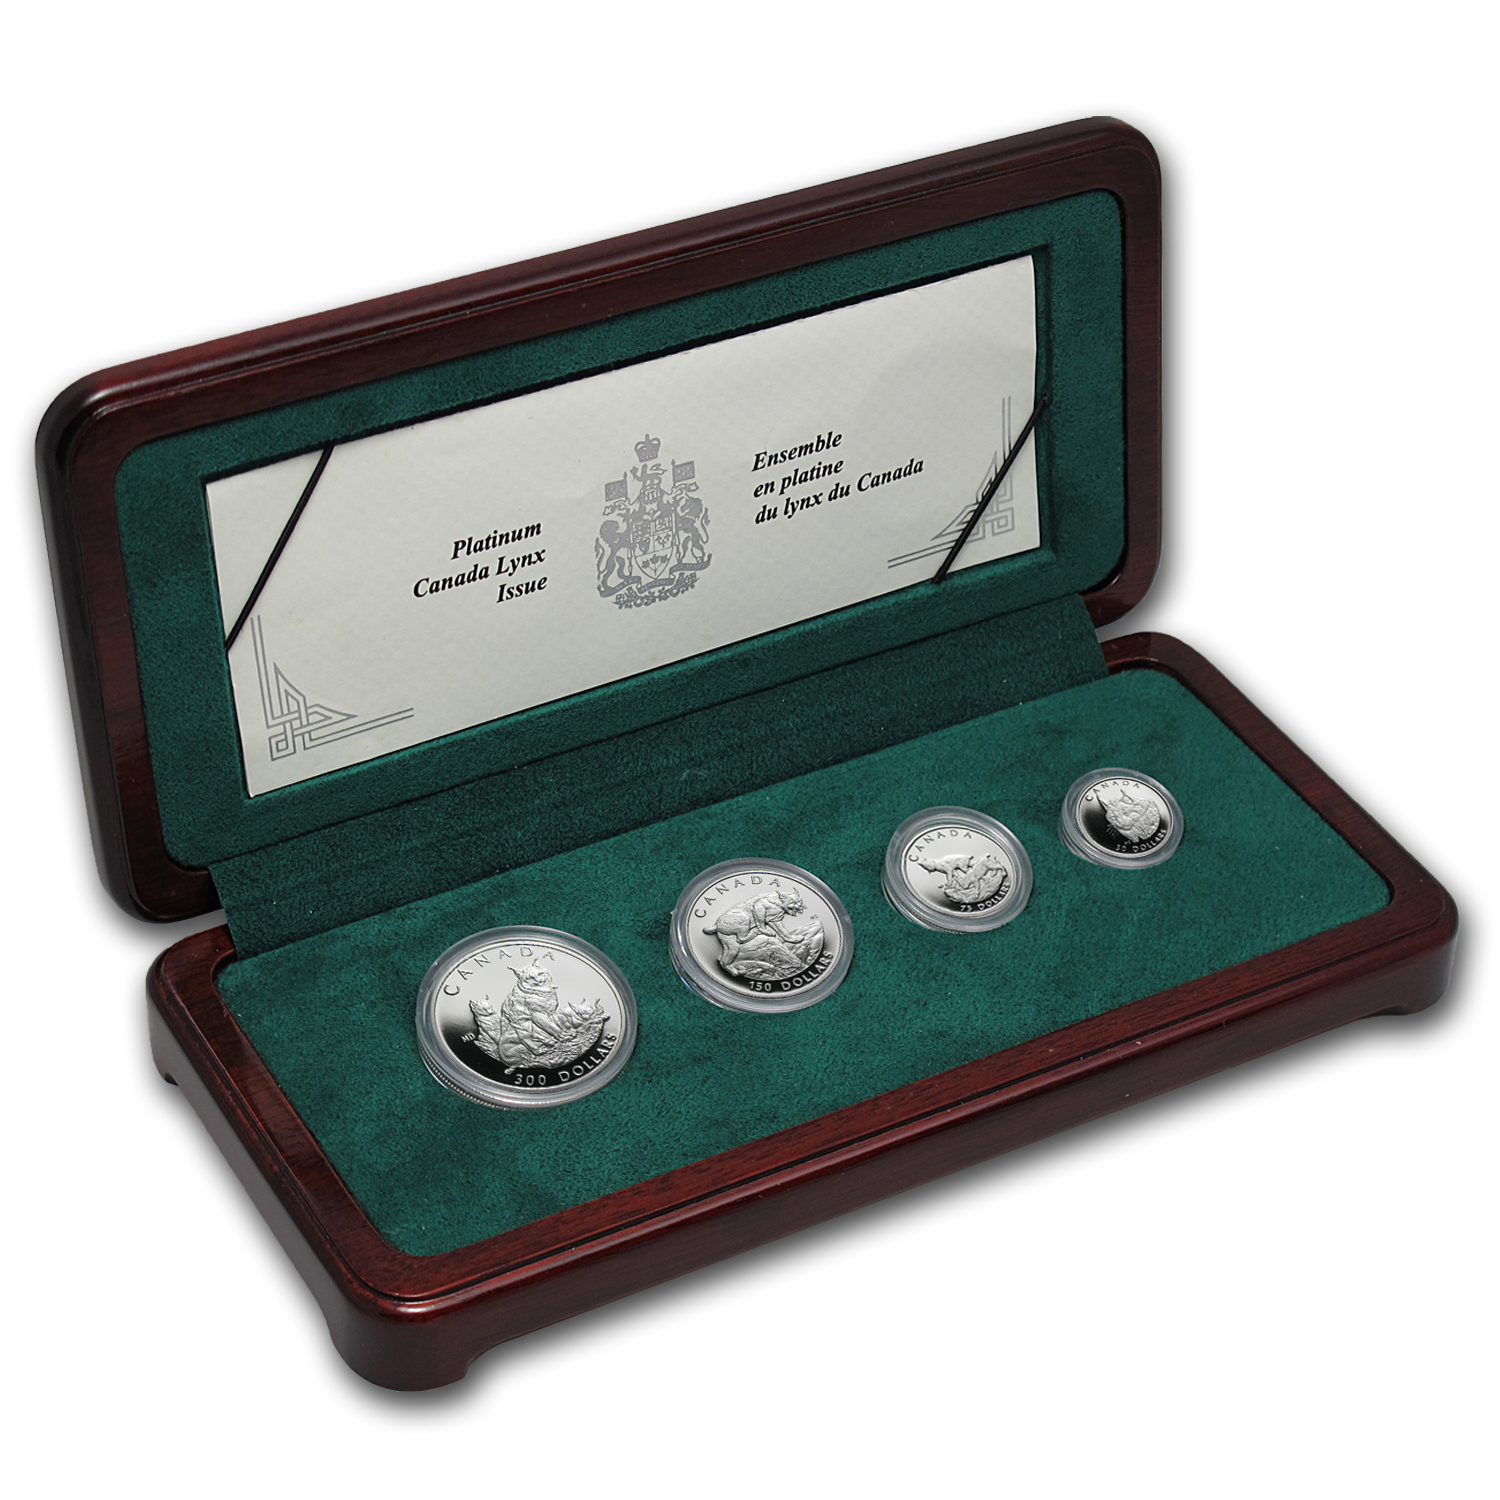 1995 Canada 4-Coin Proof Platinum Lynx Set (w/Box & COA)